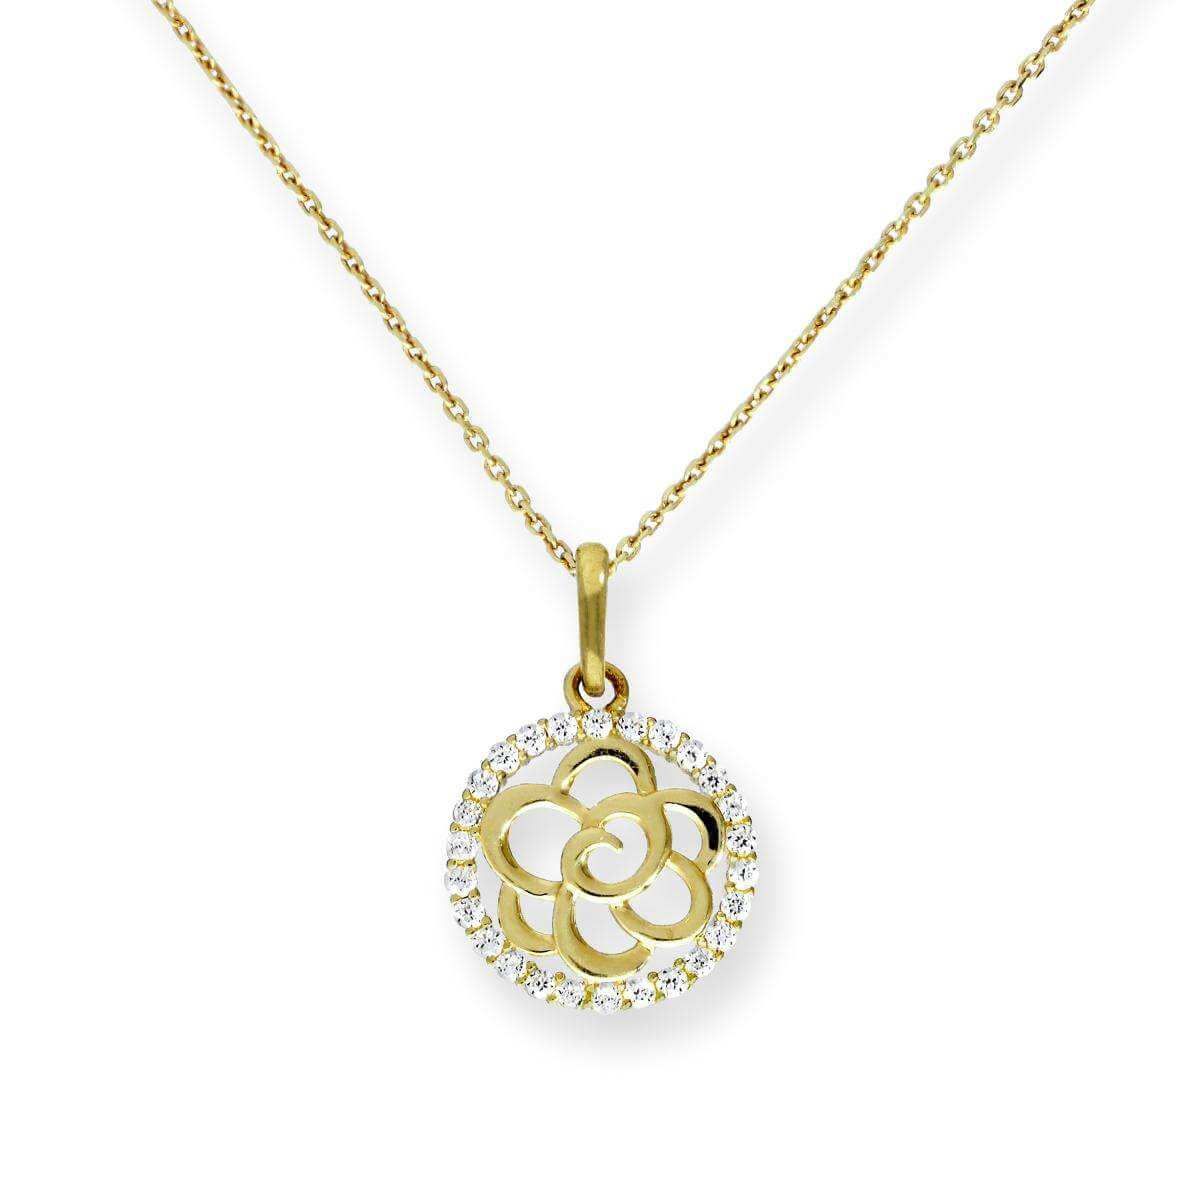 9ct Gold & CZ Crystal Open Flower Pendant Necklace 16 - 20 Inches